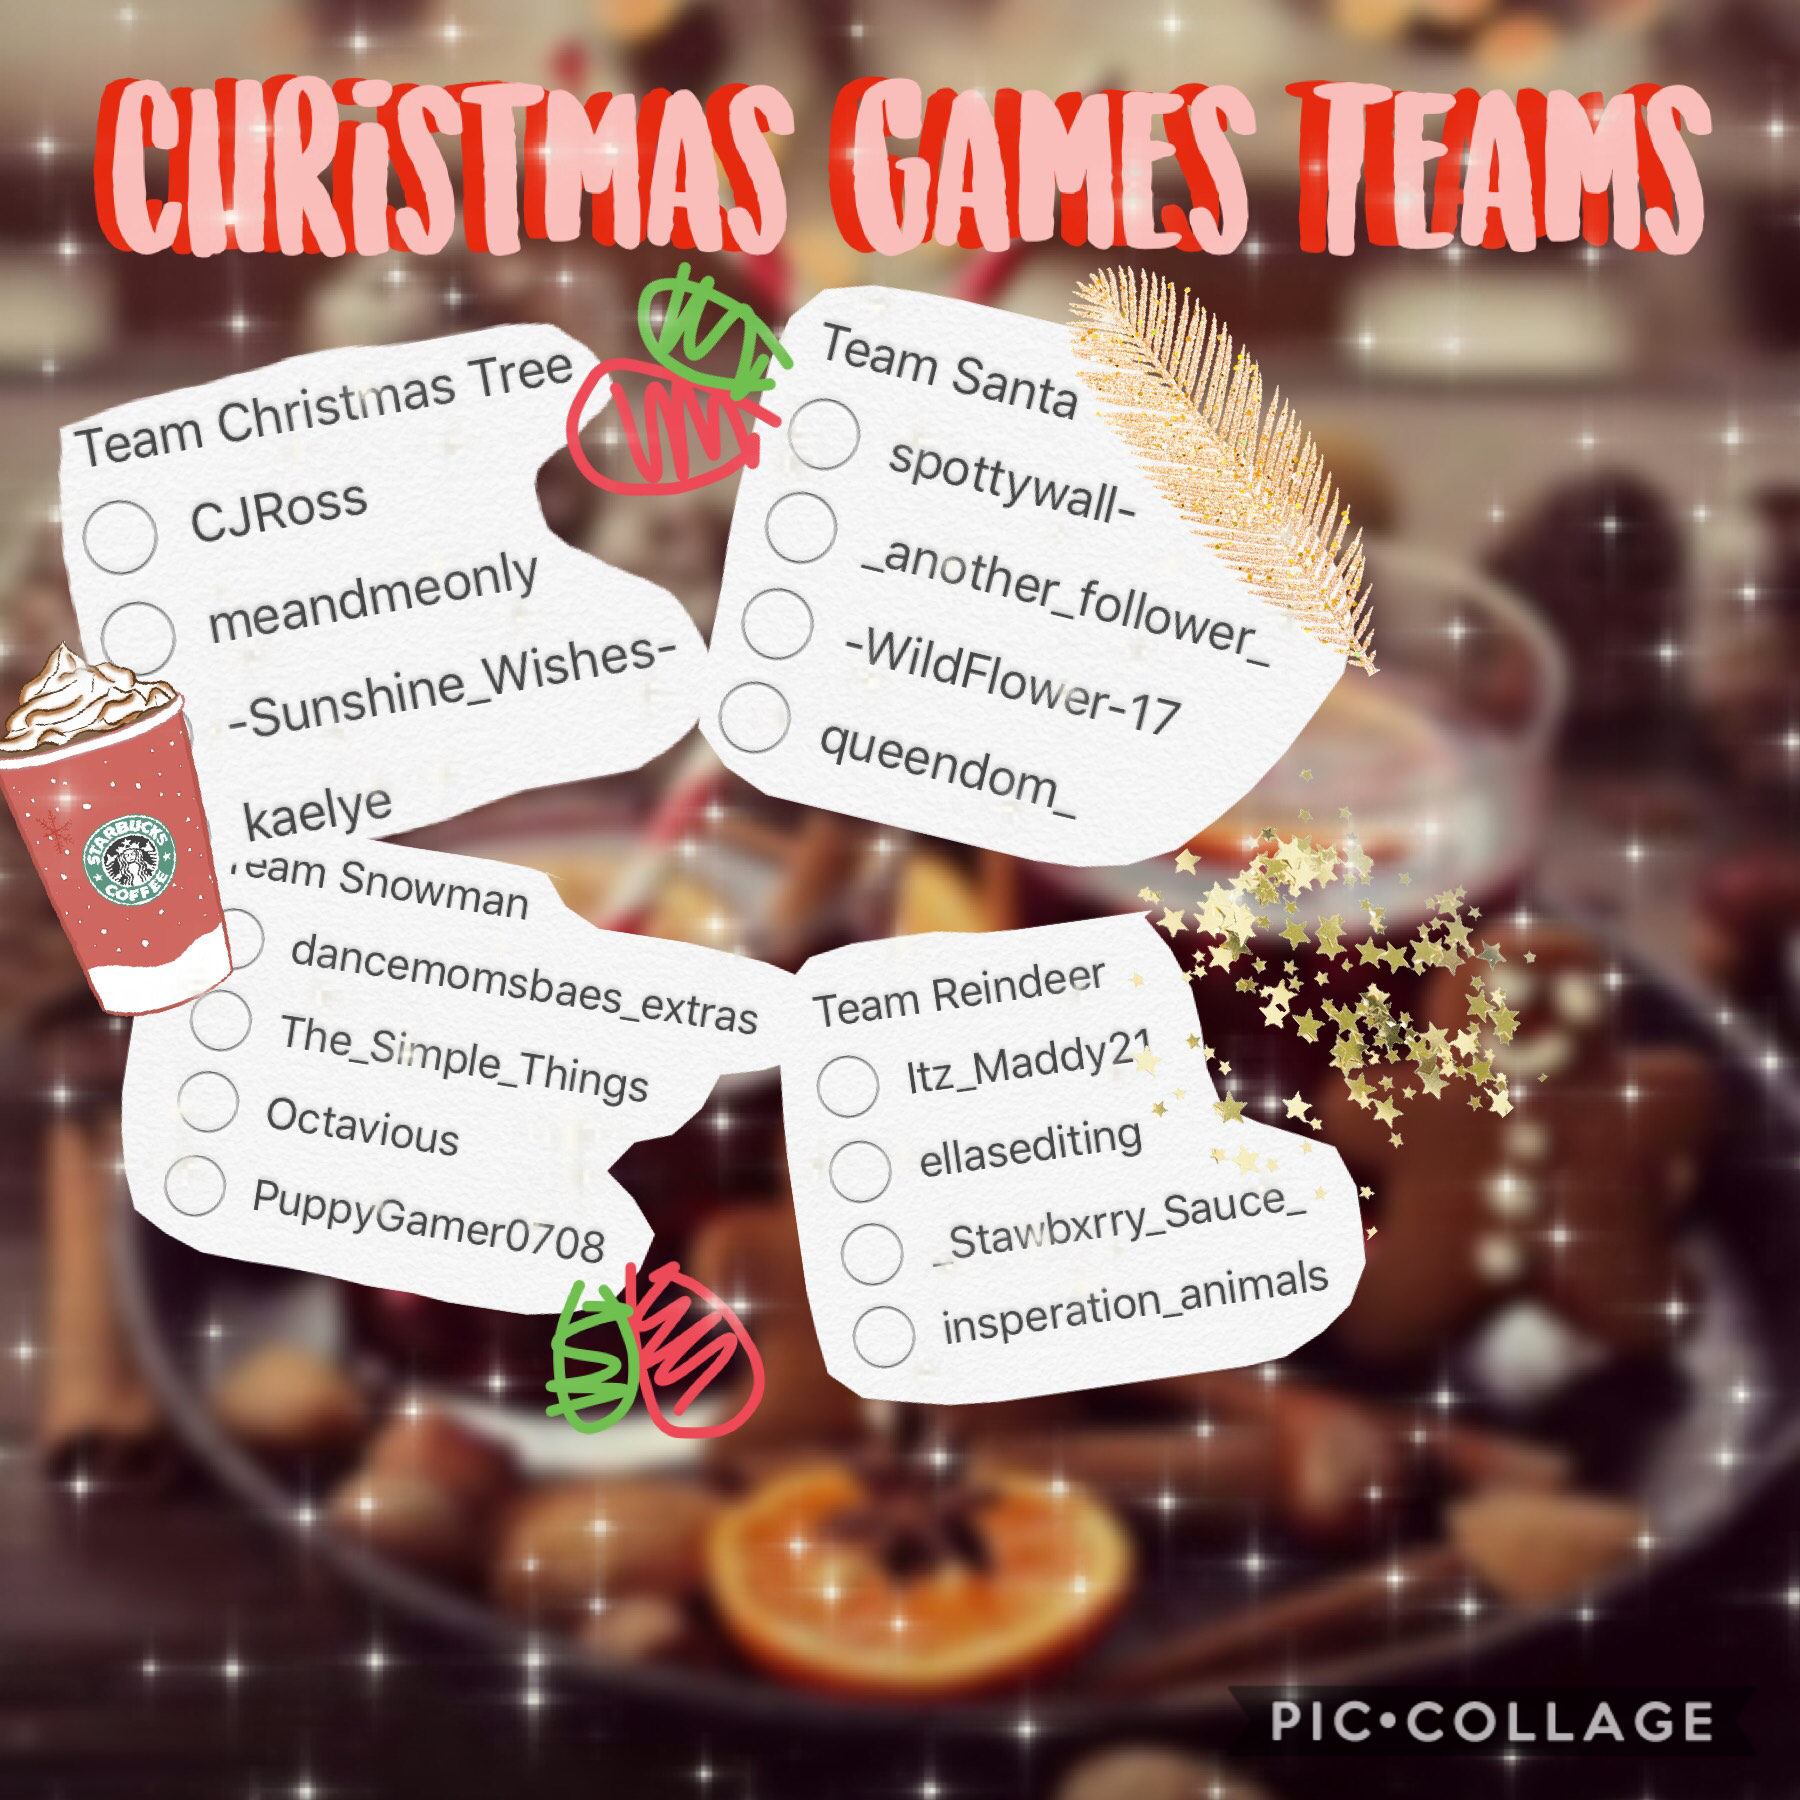 Christmas Games Teams 🎄